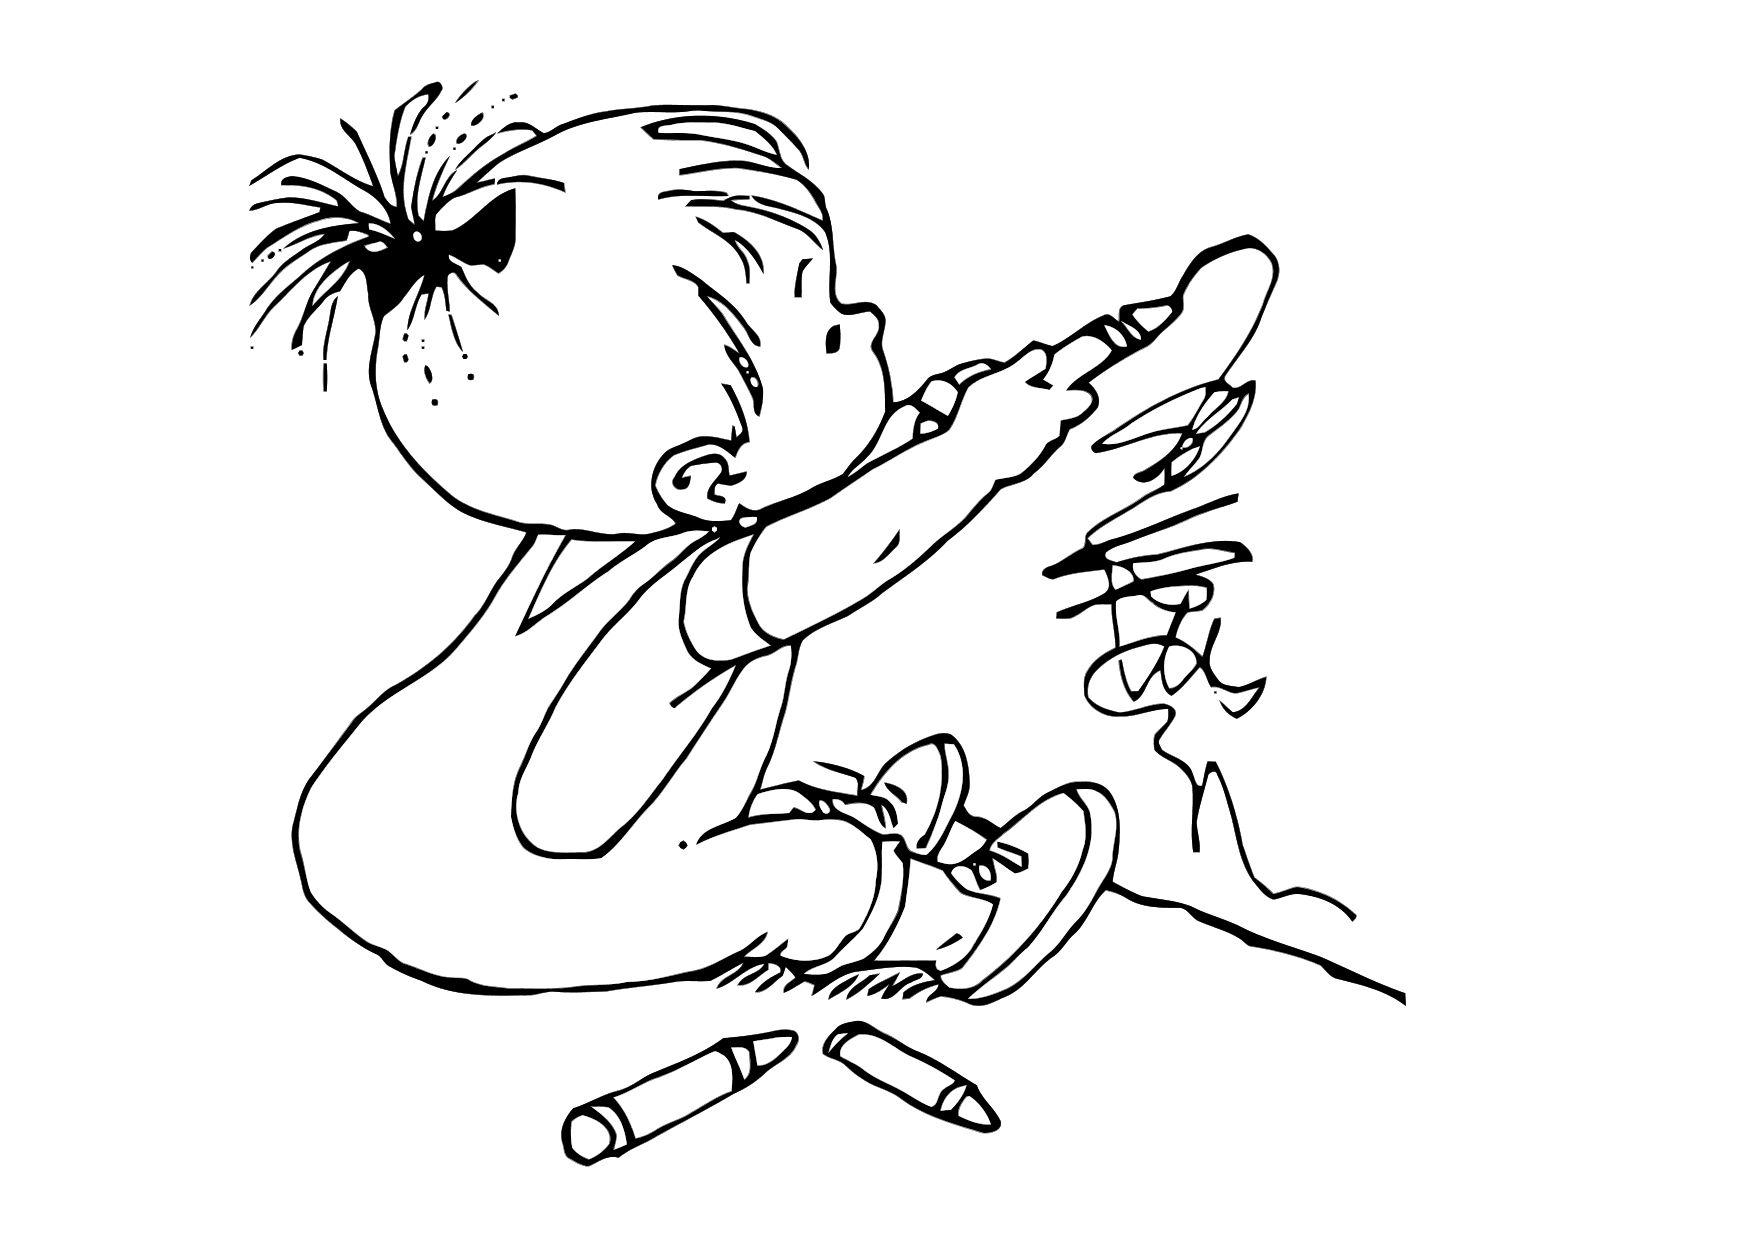 Coloring page child draws - img 11879.